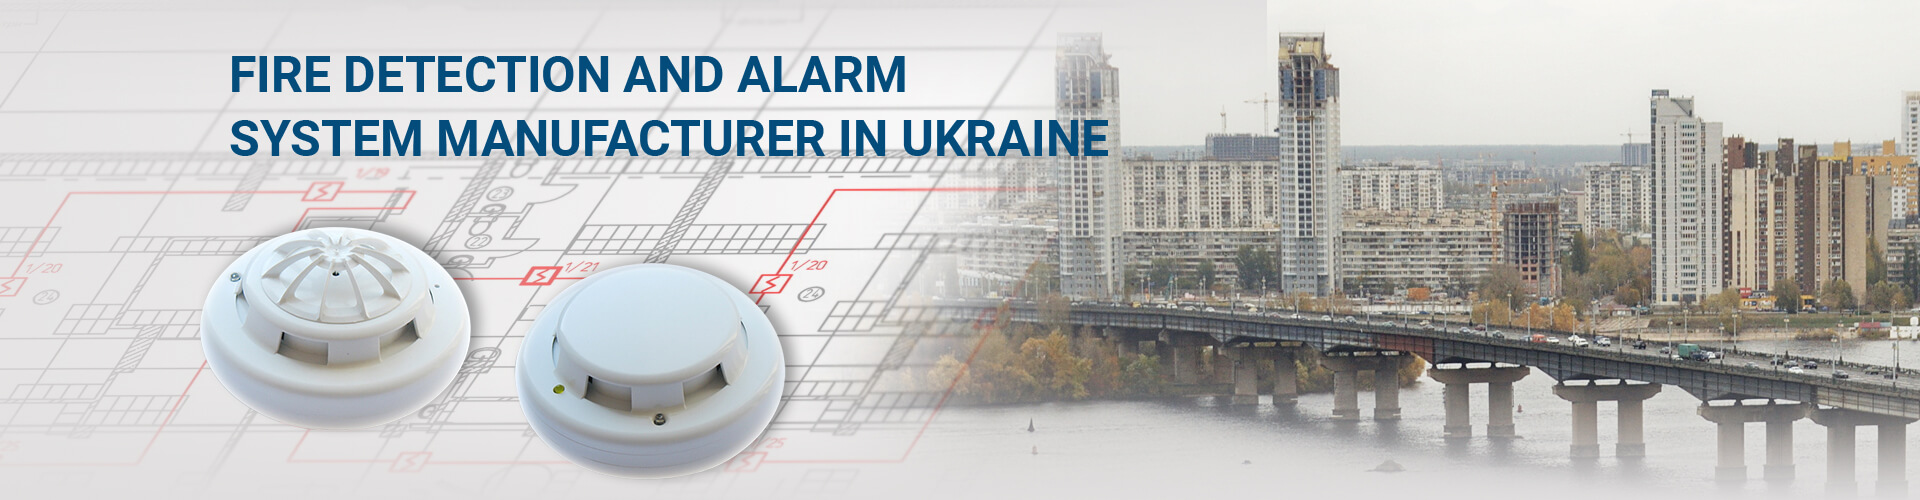 Fire Alarm System Devices - Development and Manufacturing Kyiv Ukraine